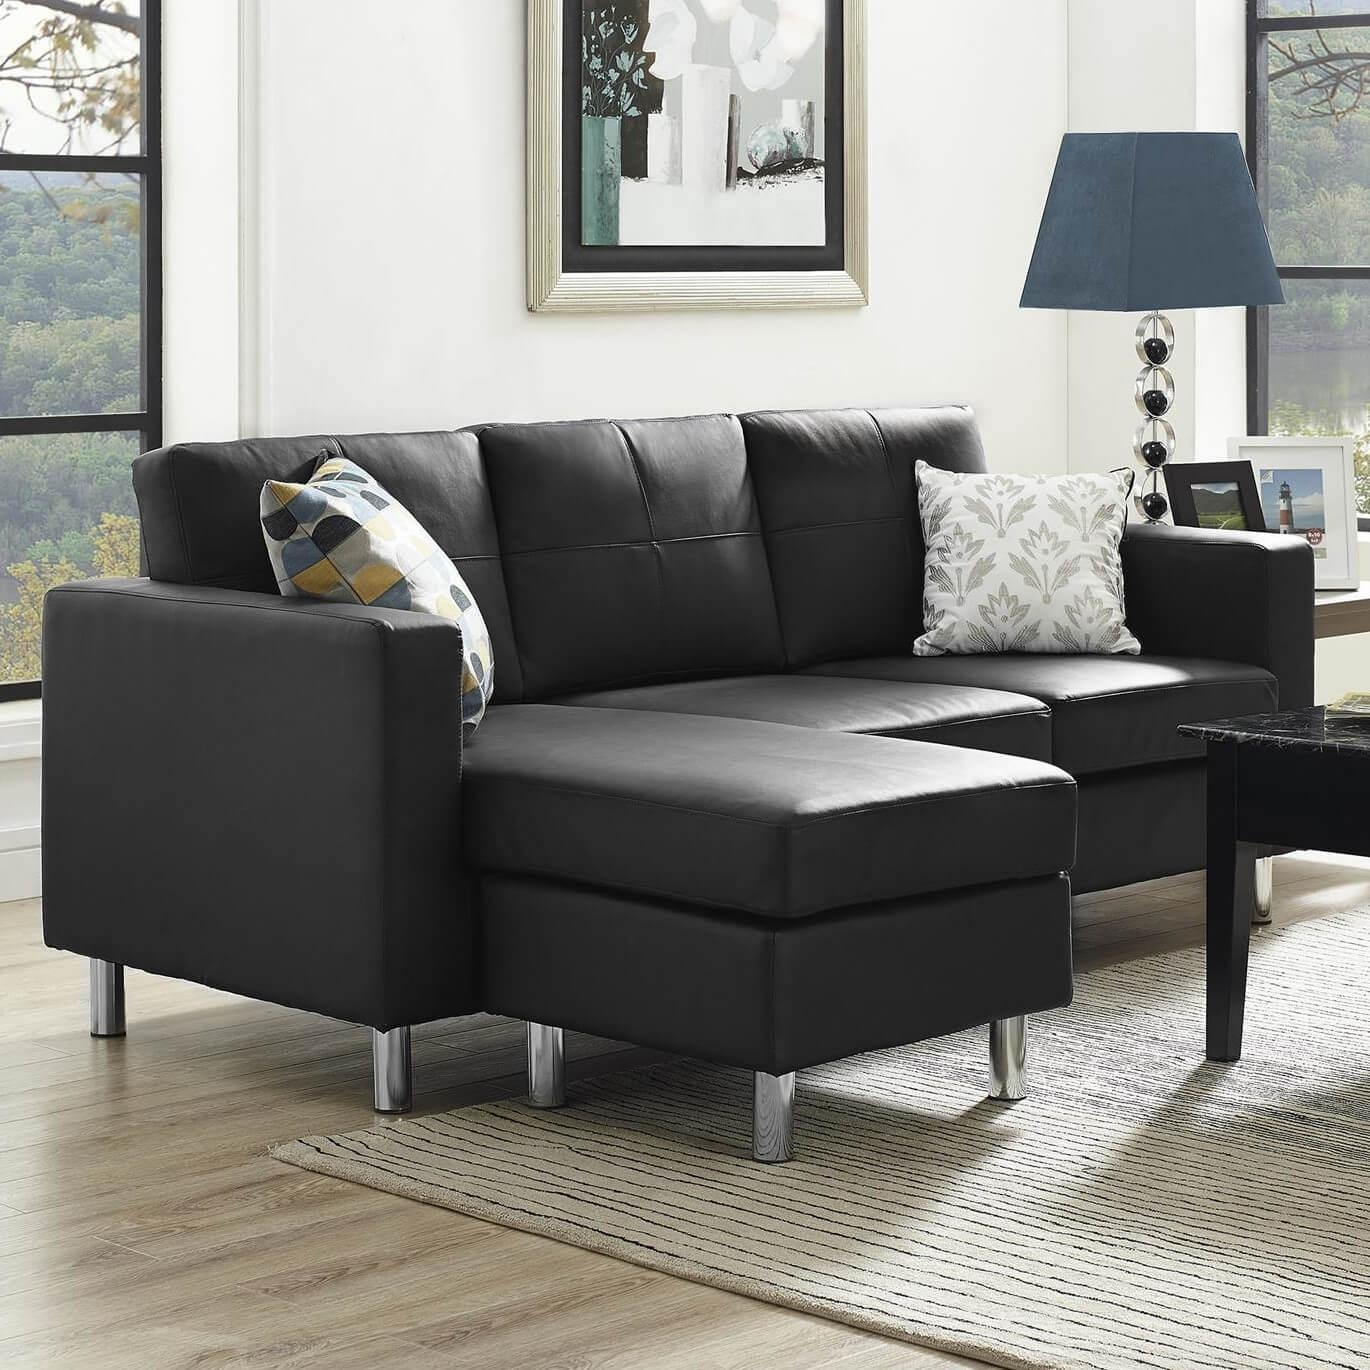 Small Sofas Under $500 20 Inspirations Modern Sectional Sofas For Small Spaces